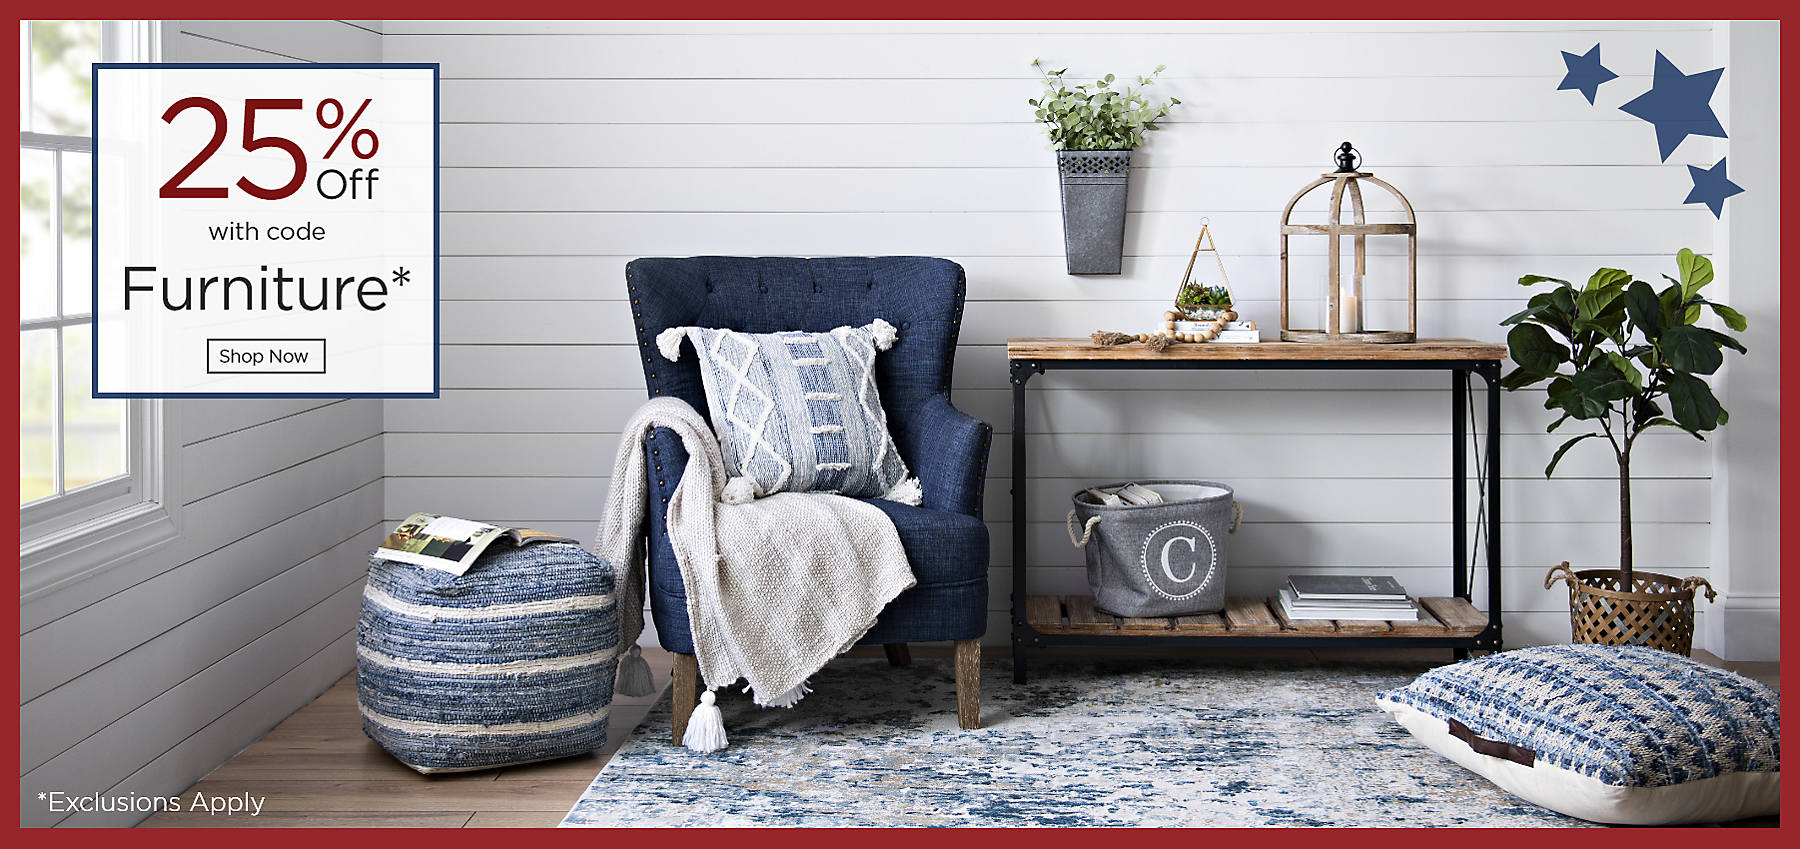 Furniture 25% Off with code Shop Now Exclusions Apply